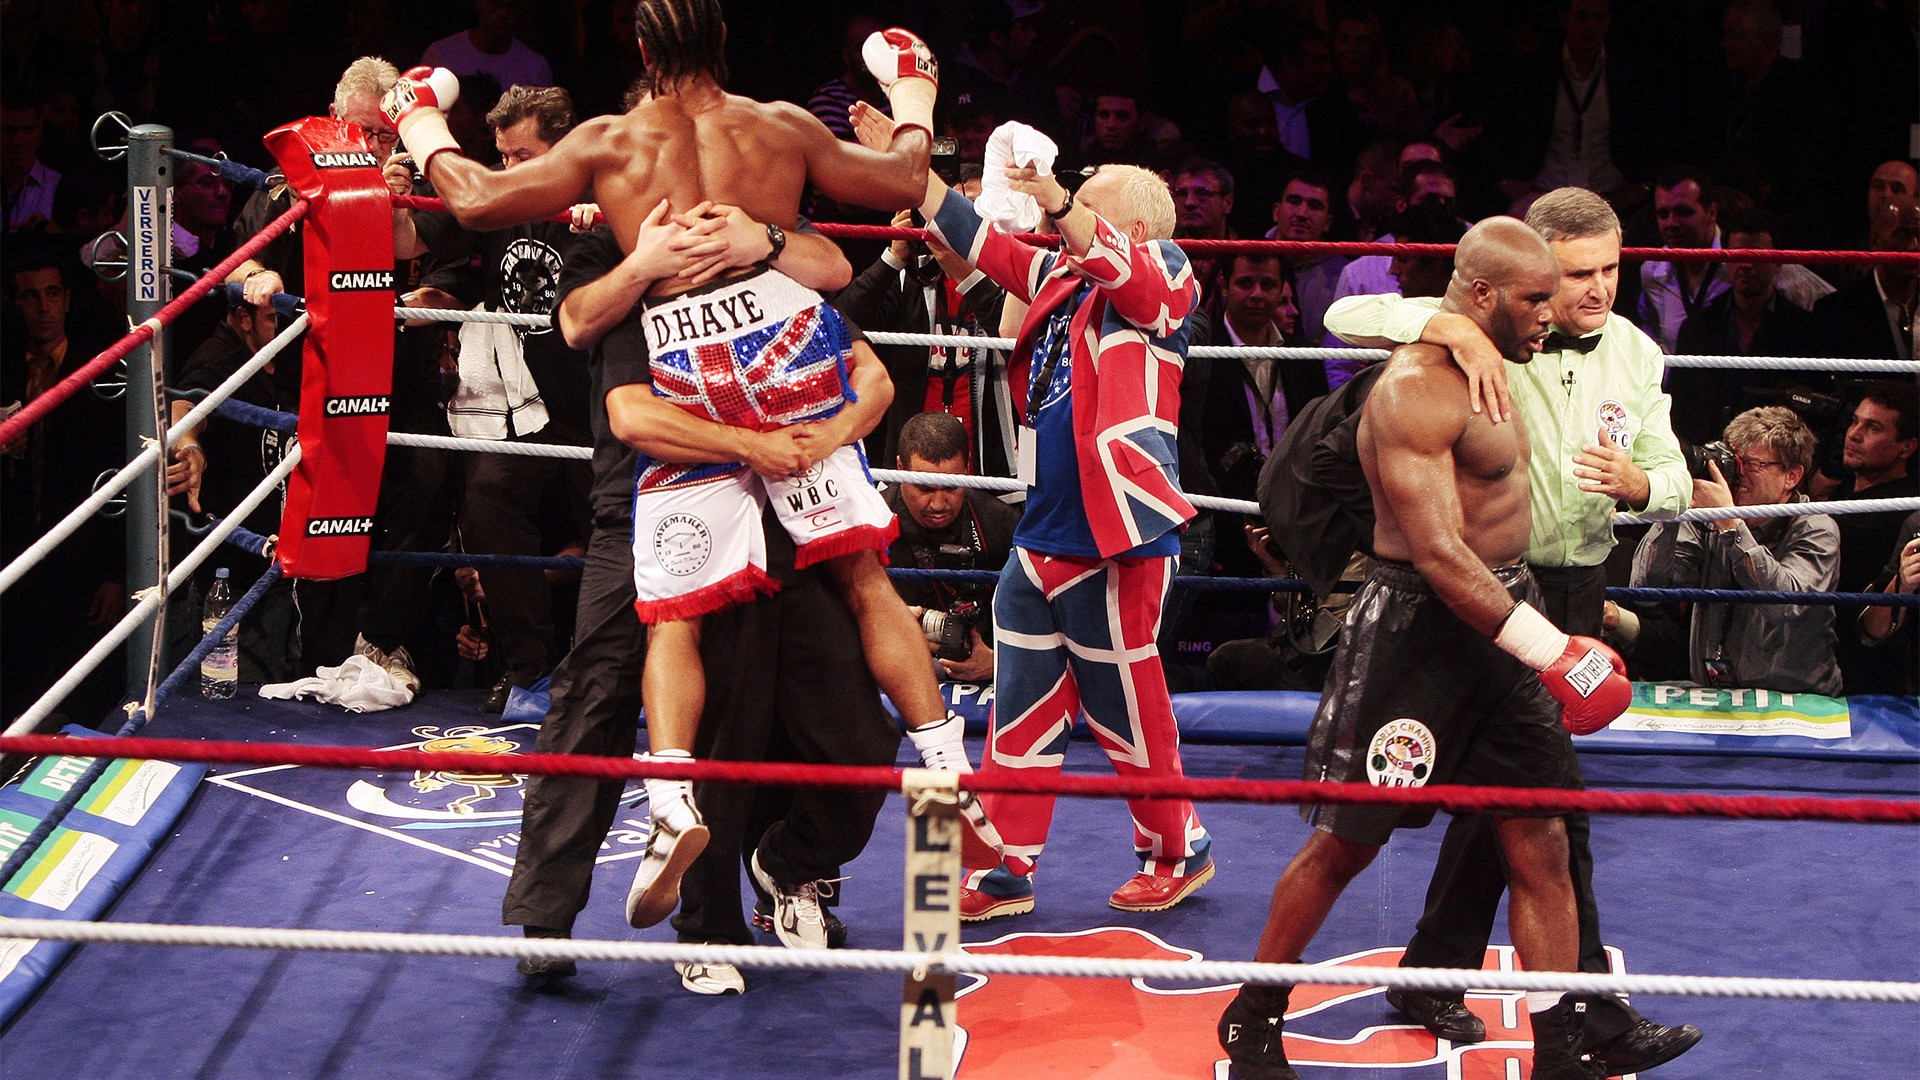 David Haye beats Jean-Marc Mormeck to become world cruiserweight champion